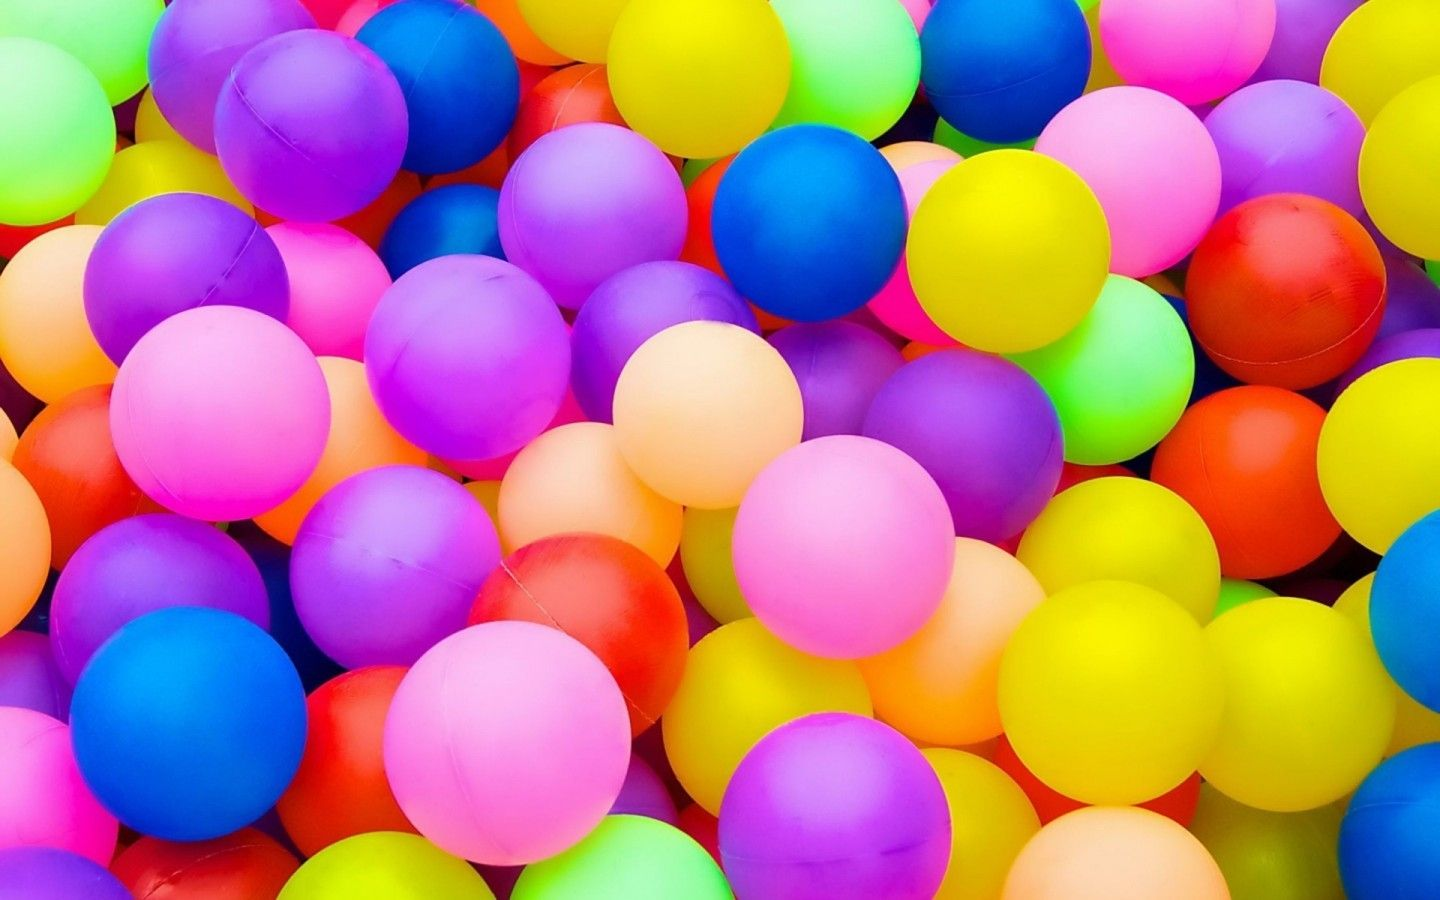 Descargar 1440x900 Ballons, Colorful Wallpapers para MacBook Pro 15